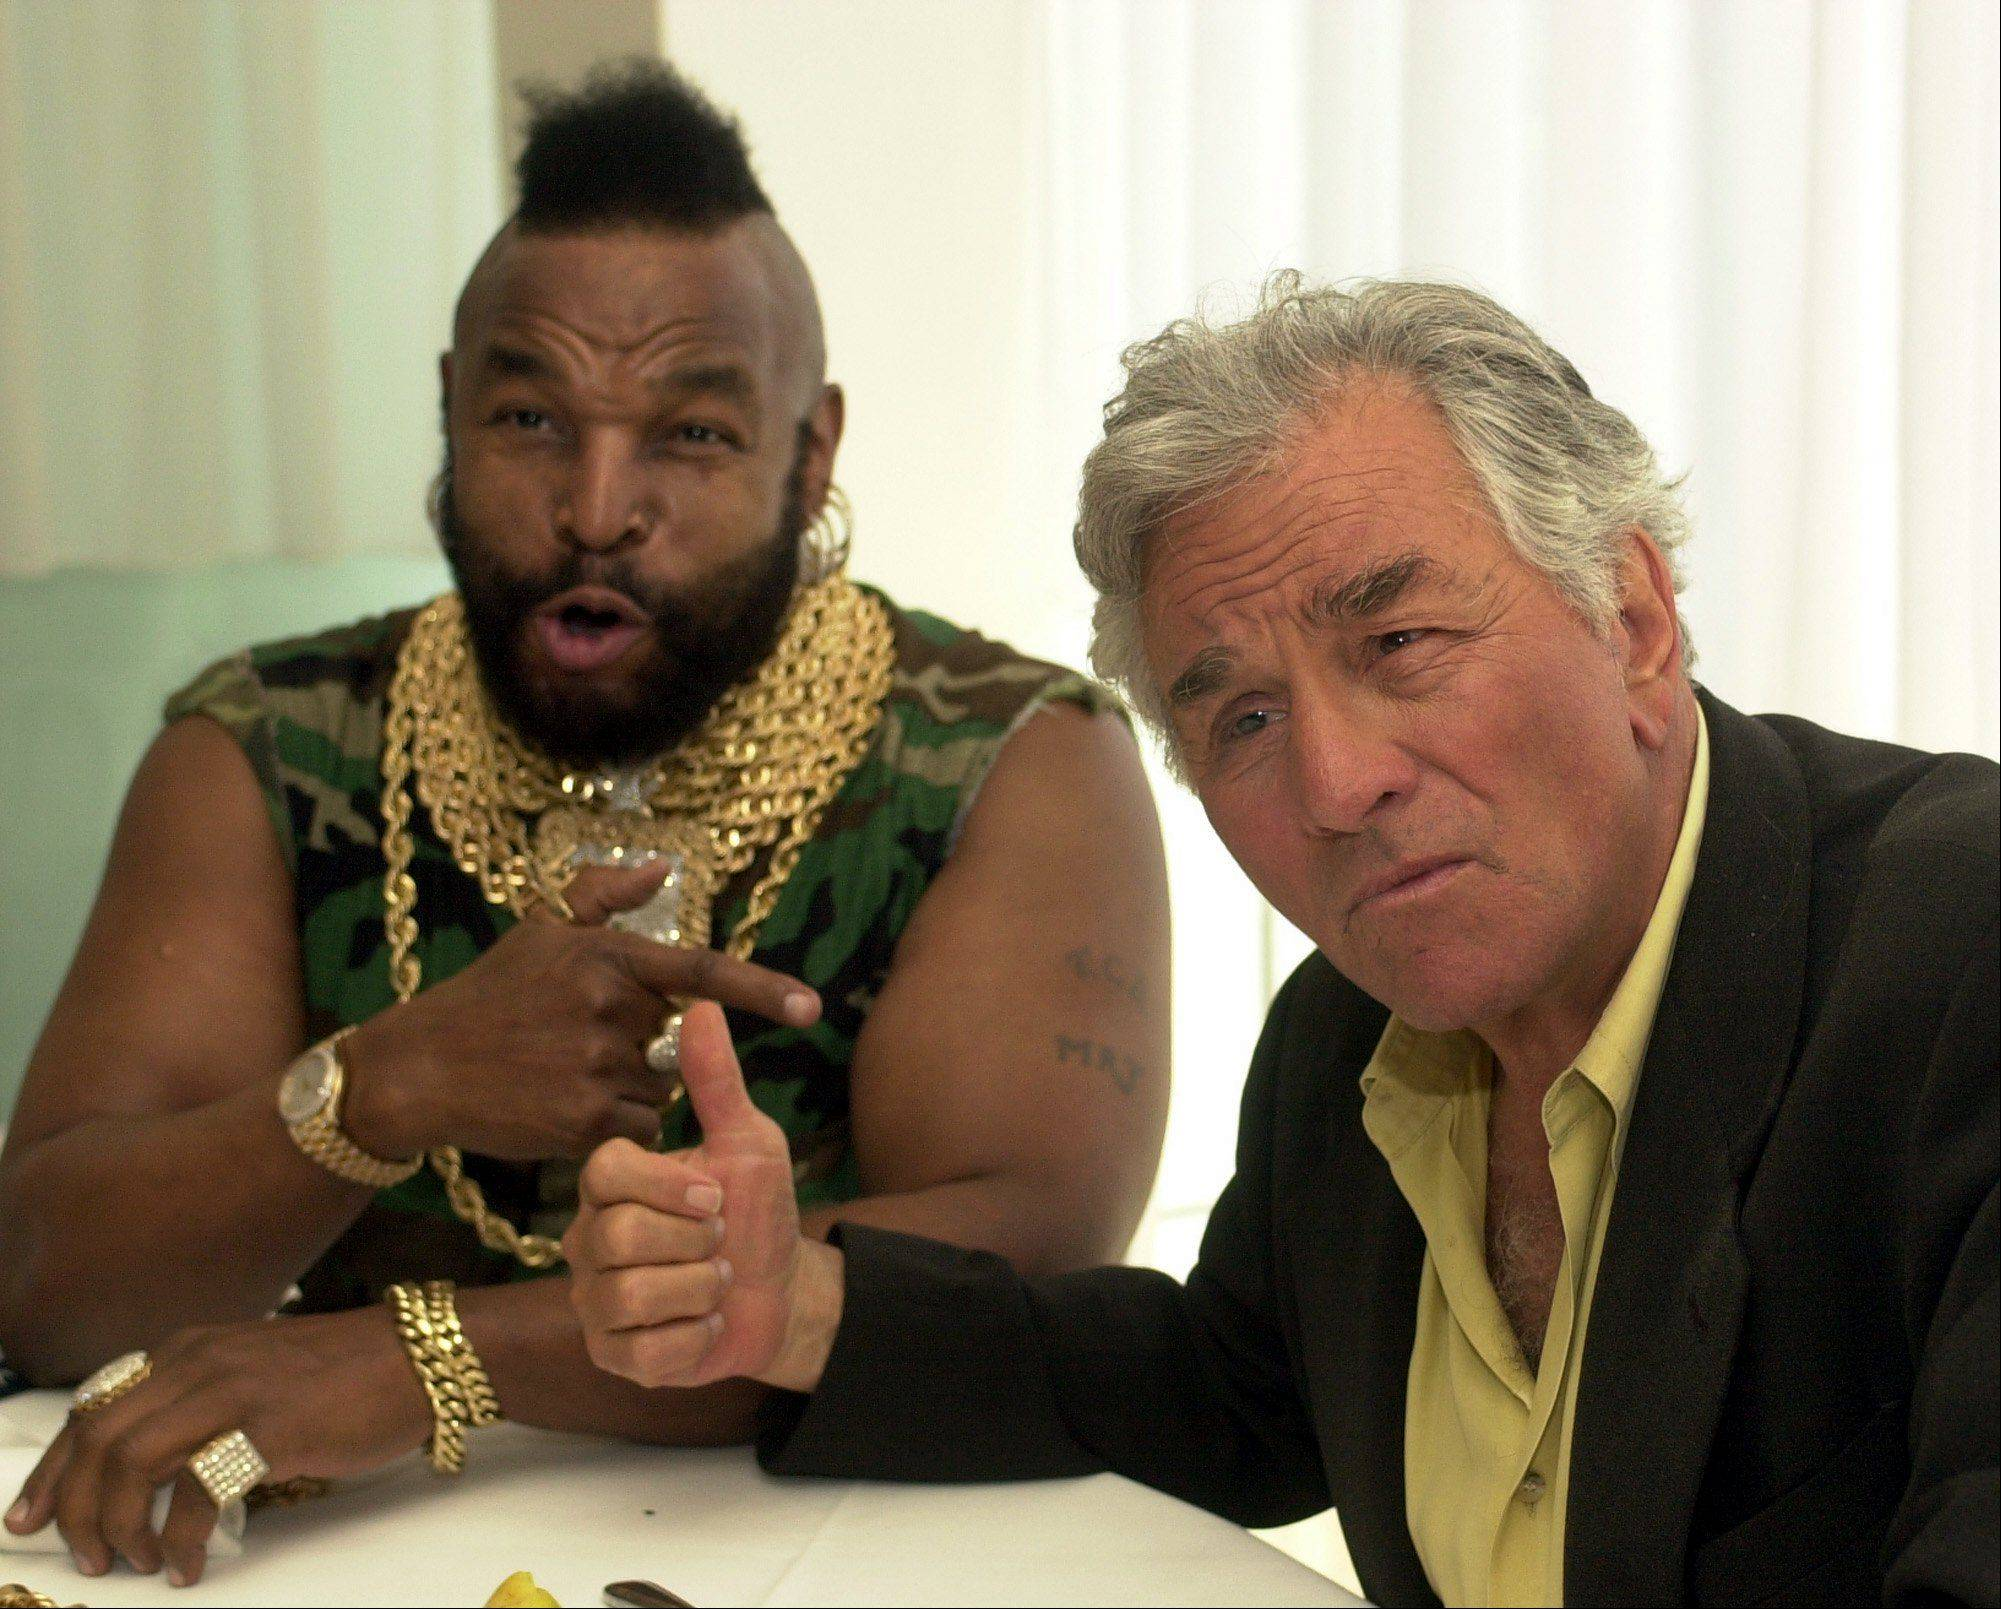 Television personalities Mr. T of A-Team, left, and Peter Falk of Columbo, tease each other at a press luncheon to celebrate NBC's 75th anniversary in West Hollywood, Calif., Thursday, April 11, 2002.